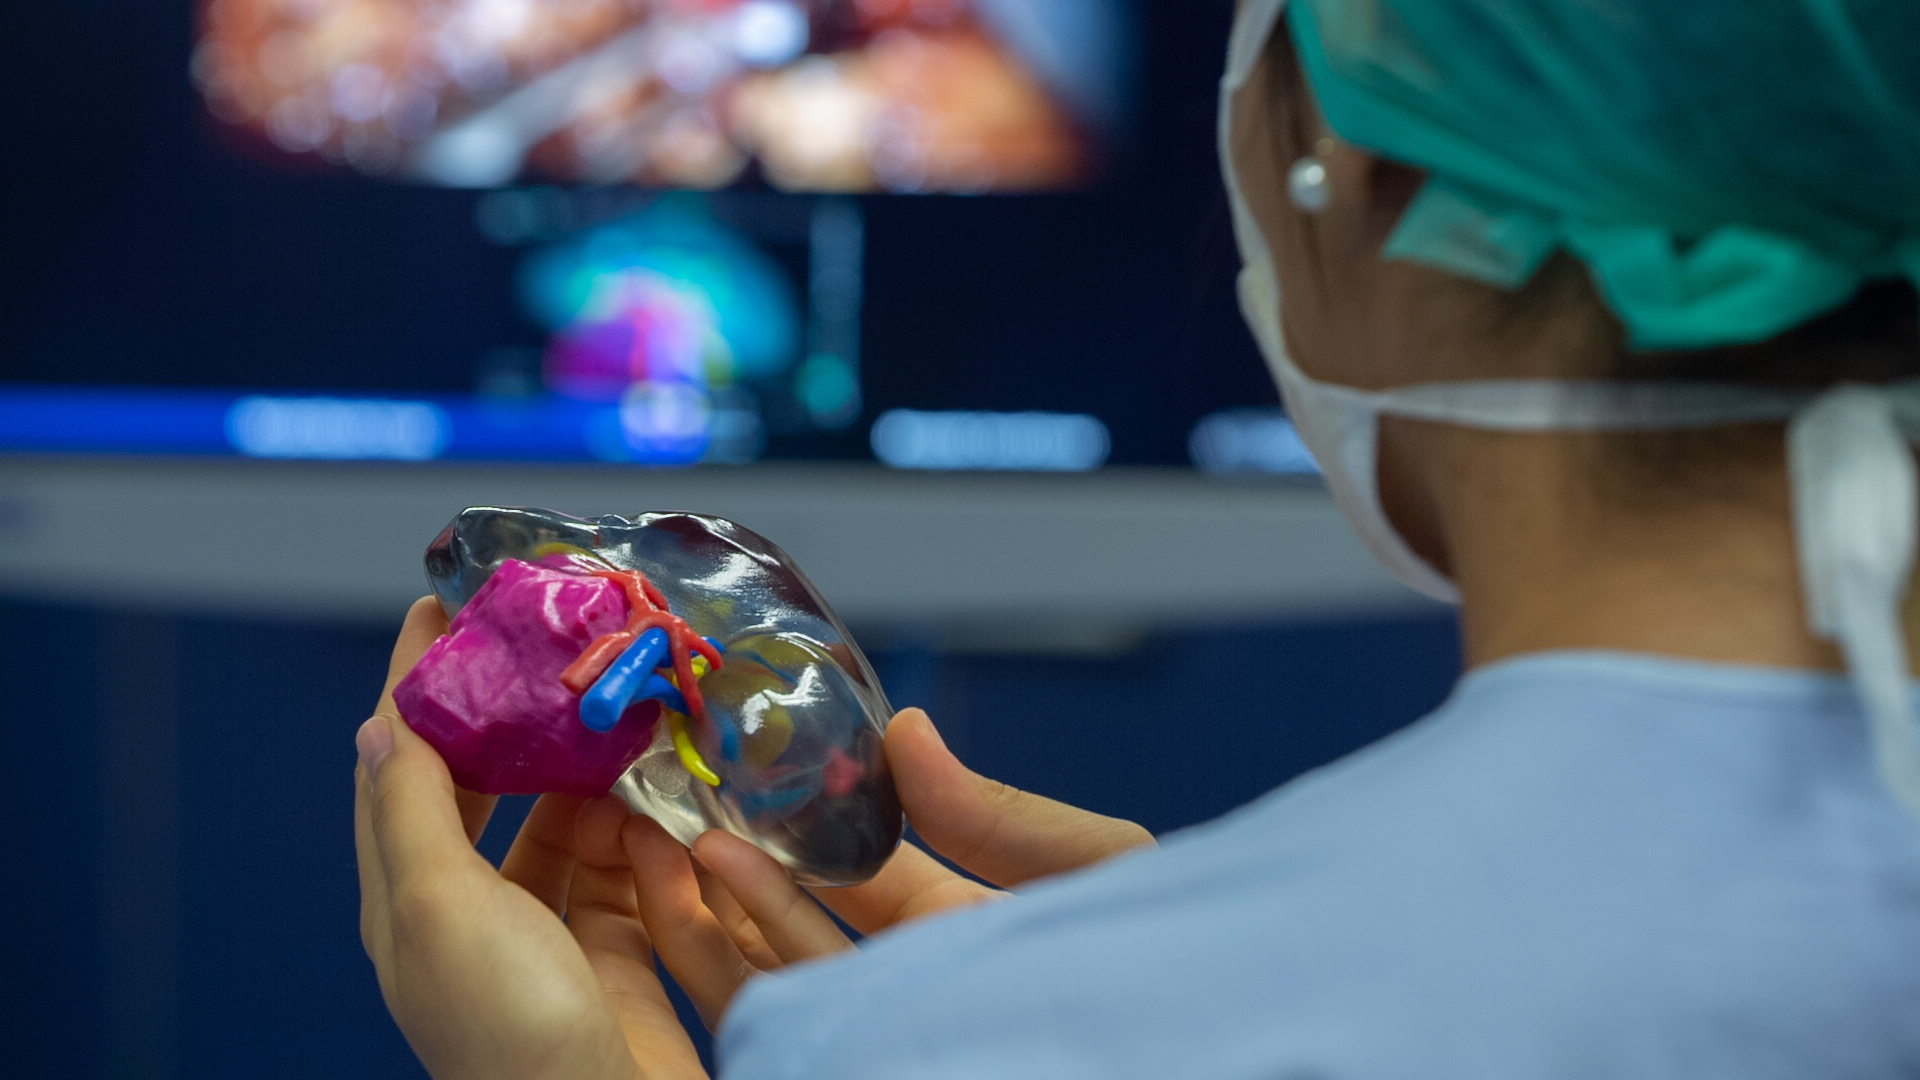 3D printed kidney tumor model used in pre-surgical planning. Photo via Stratasys